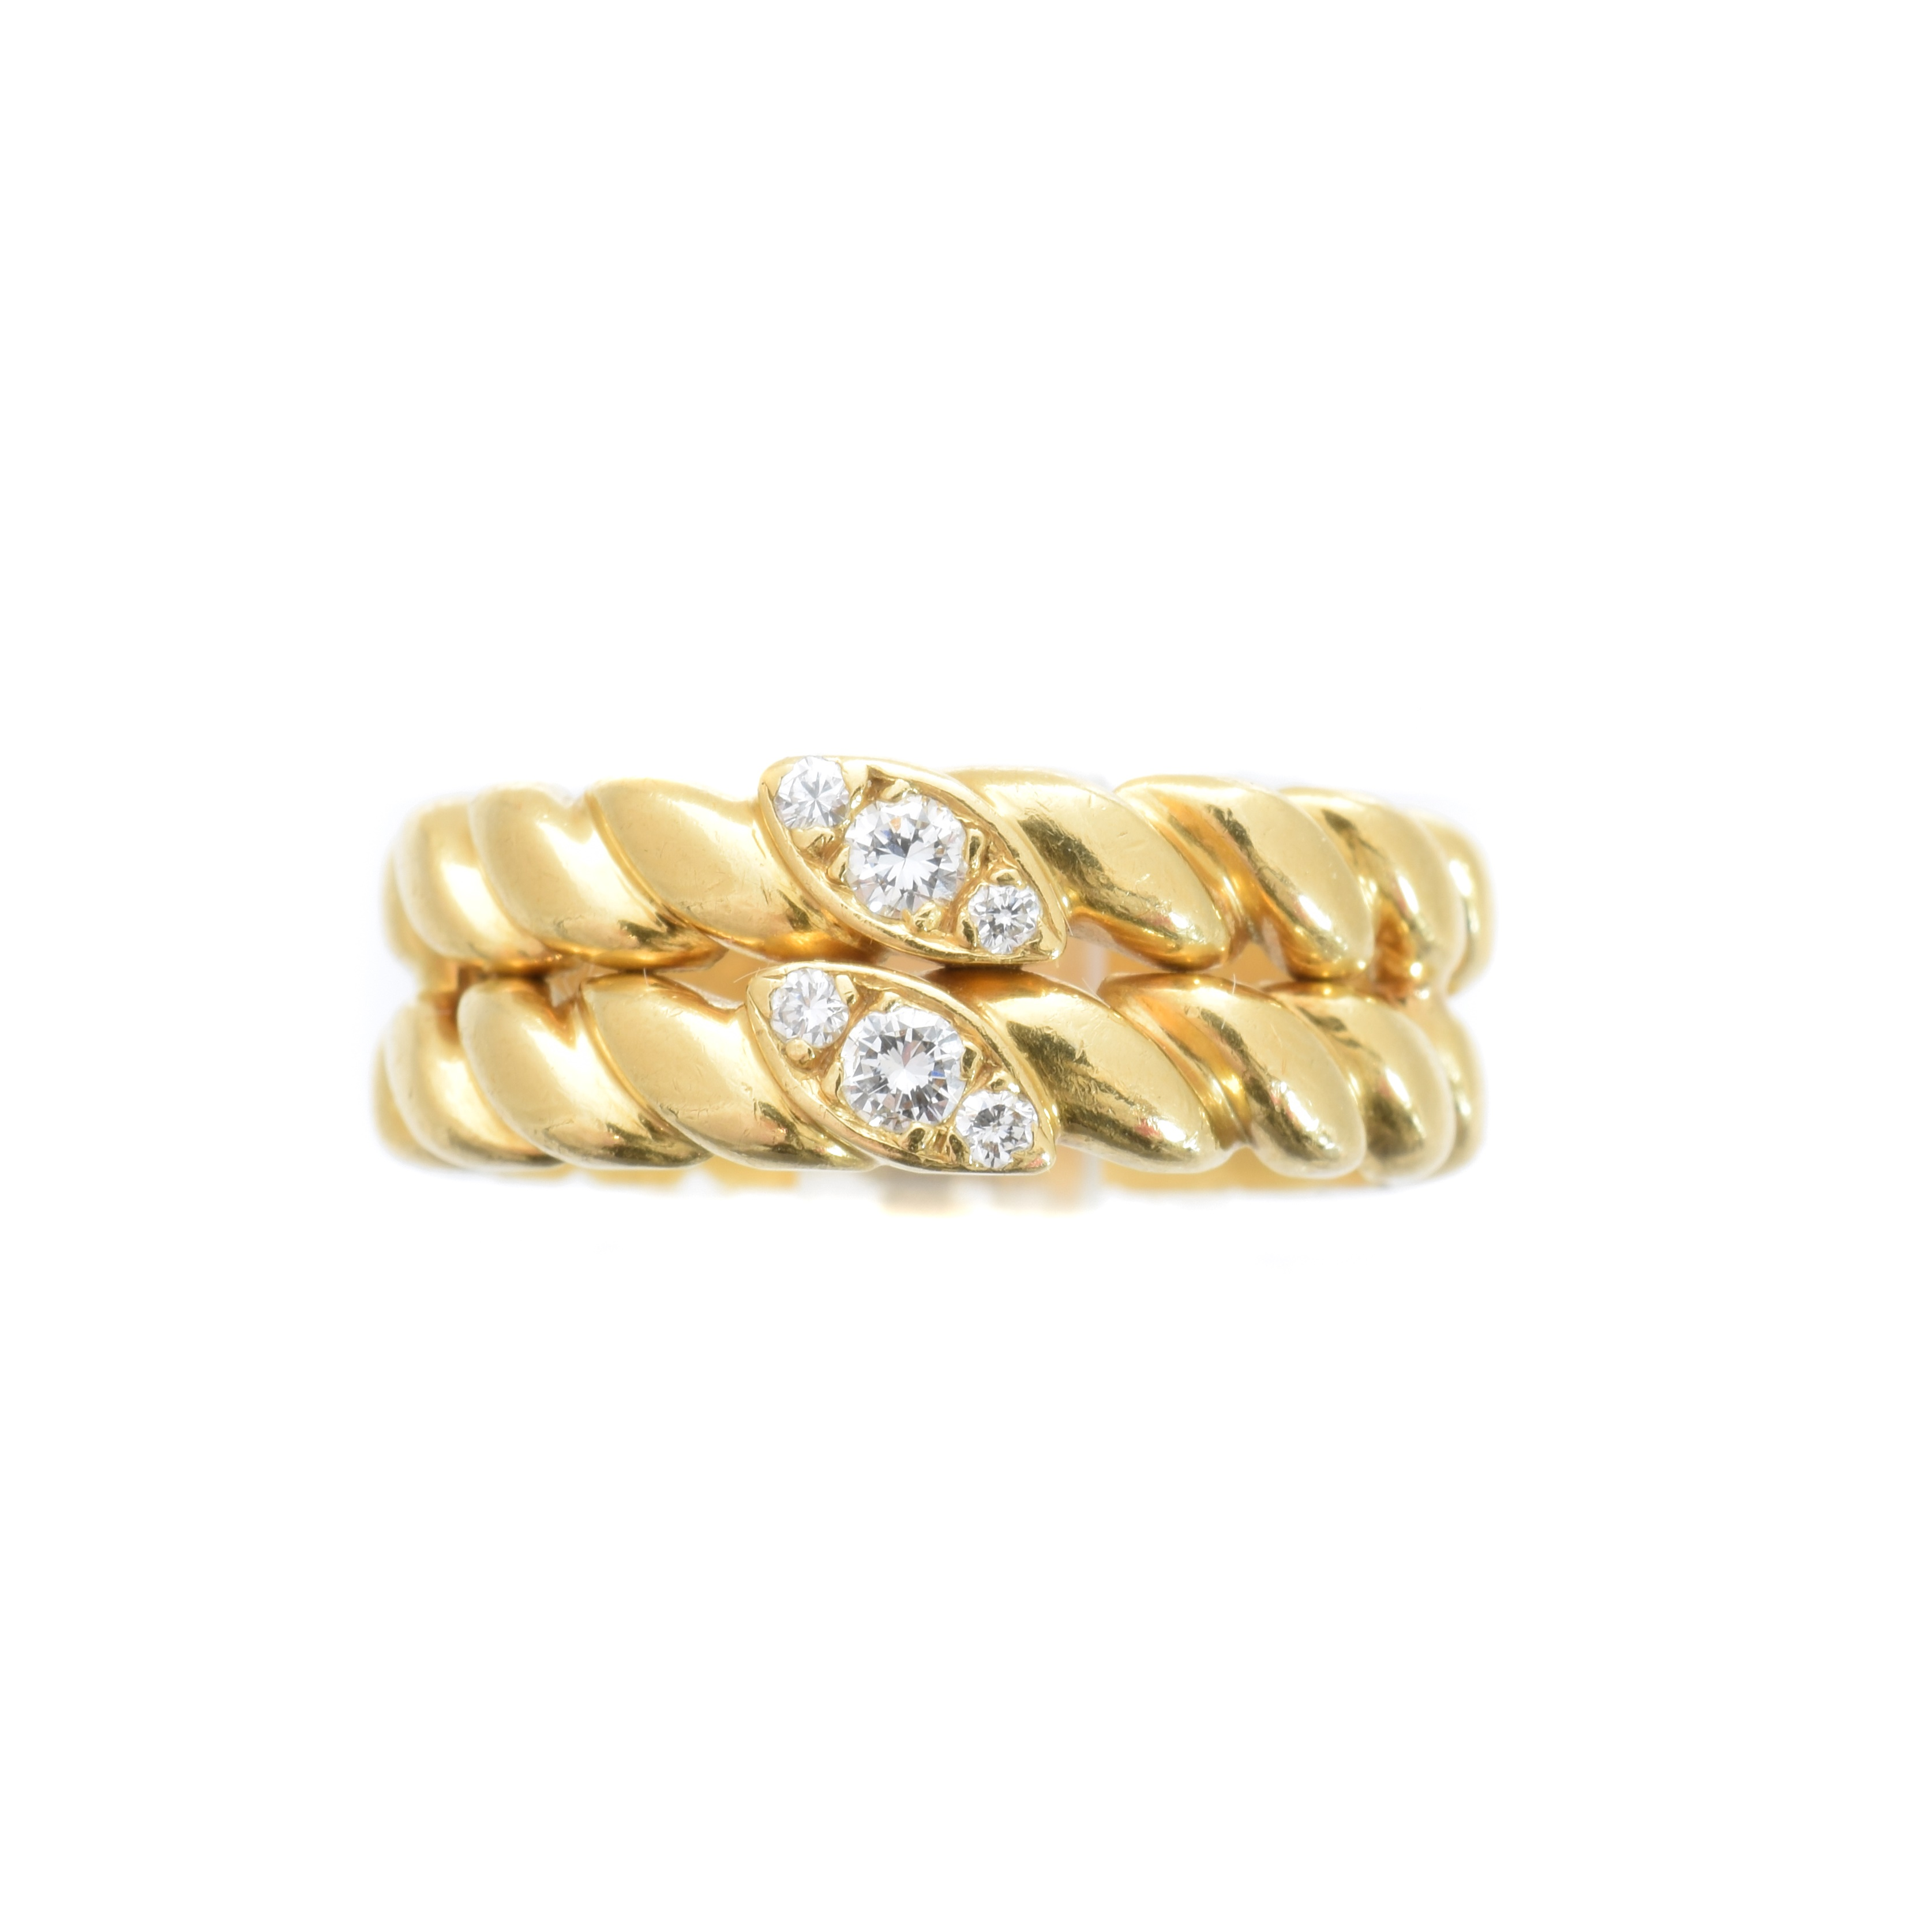 An 18ct gold diamond band ring by Van Cleef & Arpels,